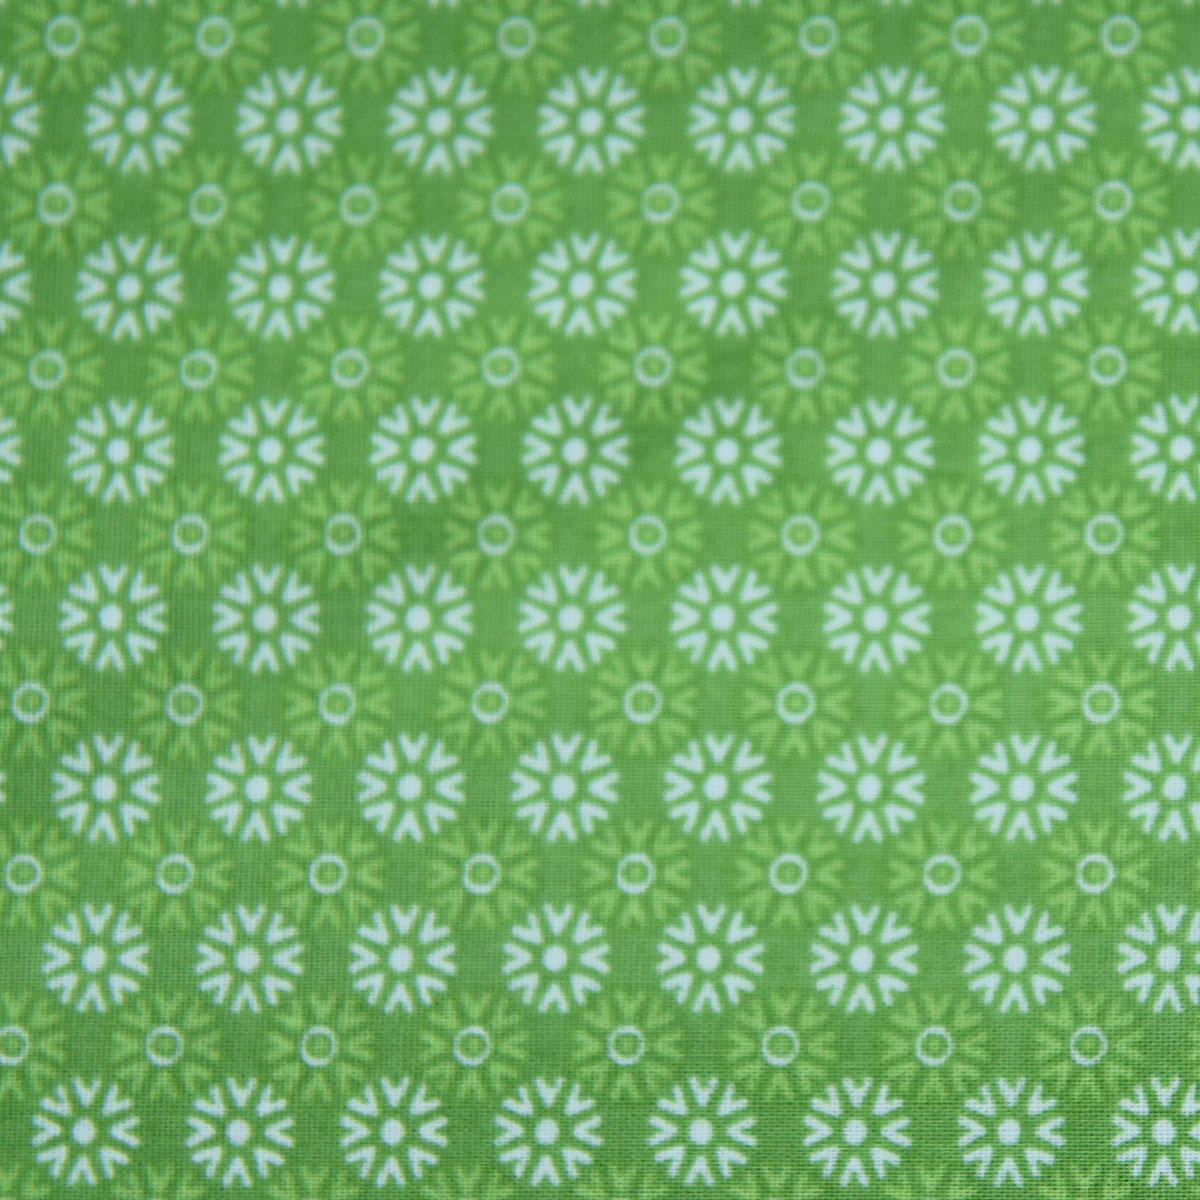 Green Patterned Fabric Rectangle